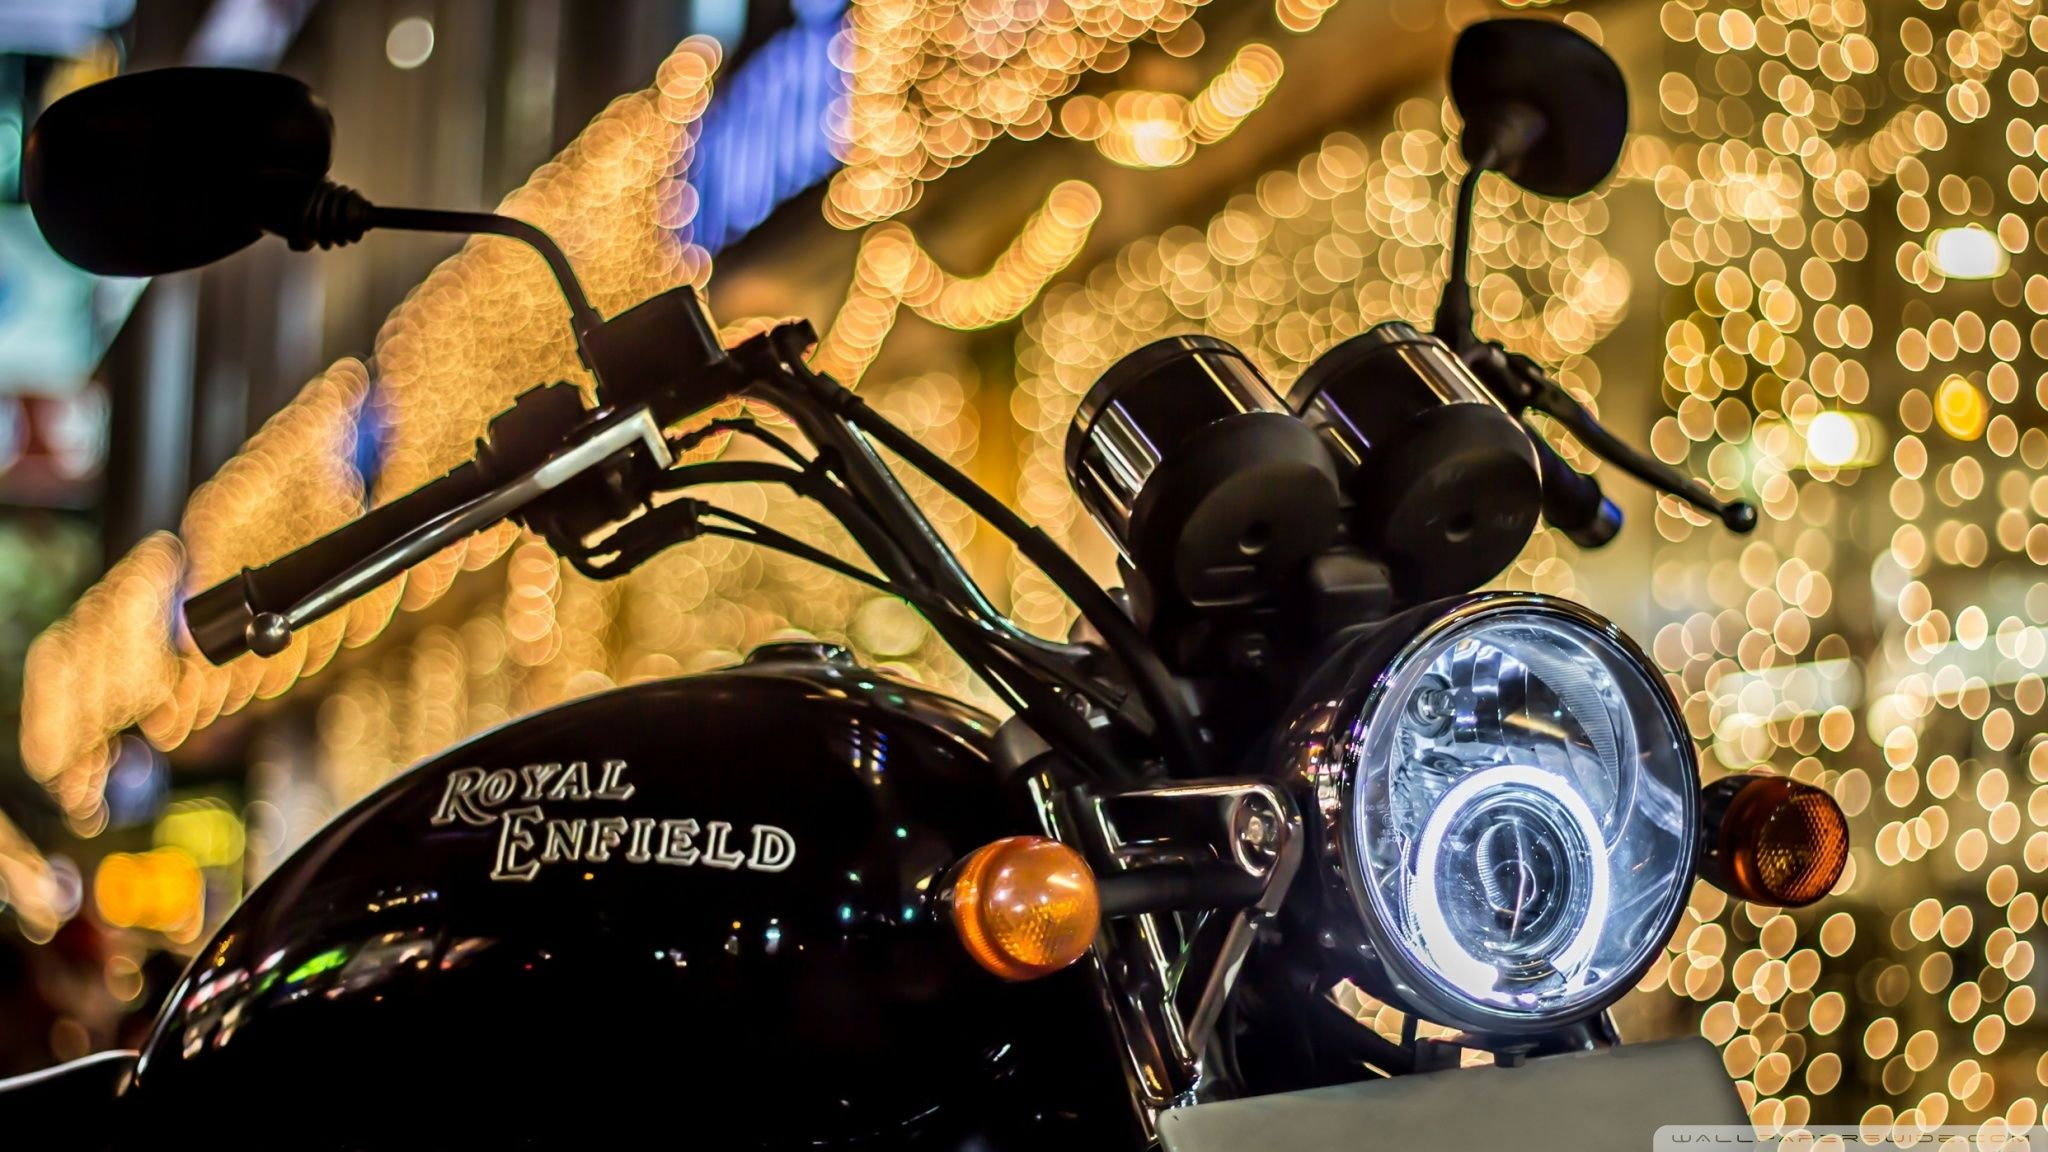 Royal Enfield Bullet 350 500cc Usa Spec Colour Wiring Diagram Thunderbird Headlight Pinterest Hd Wallpapers Motorcycle Bike